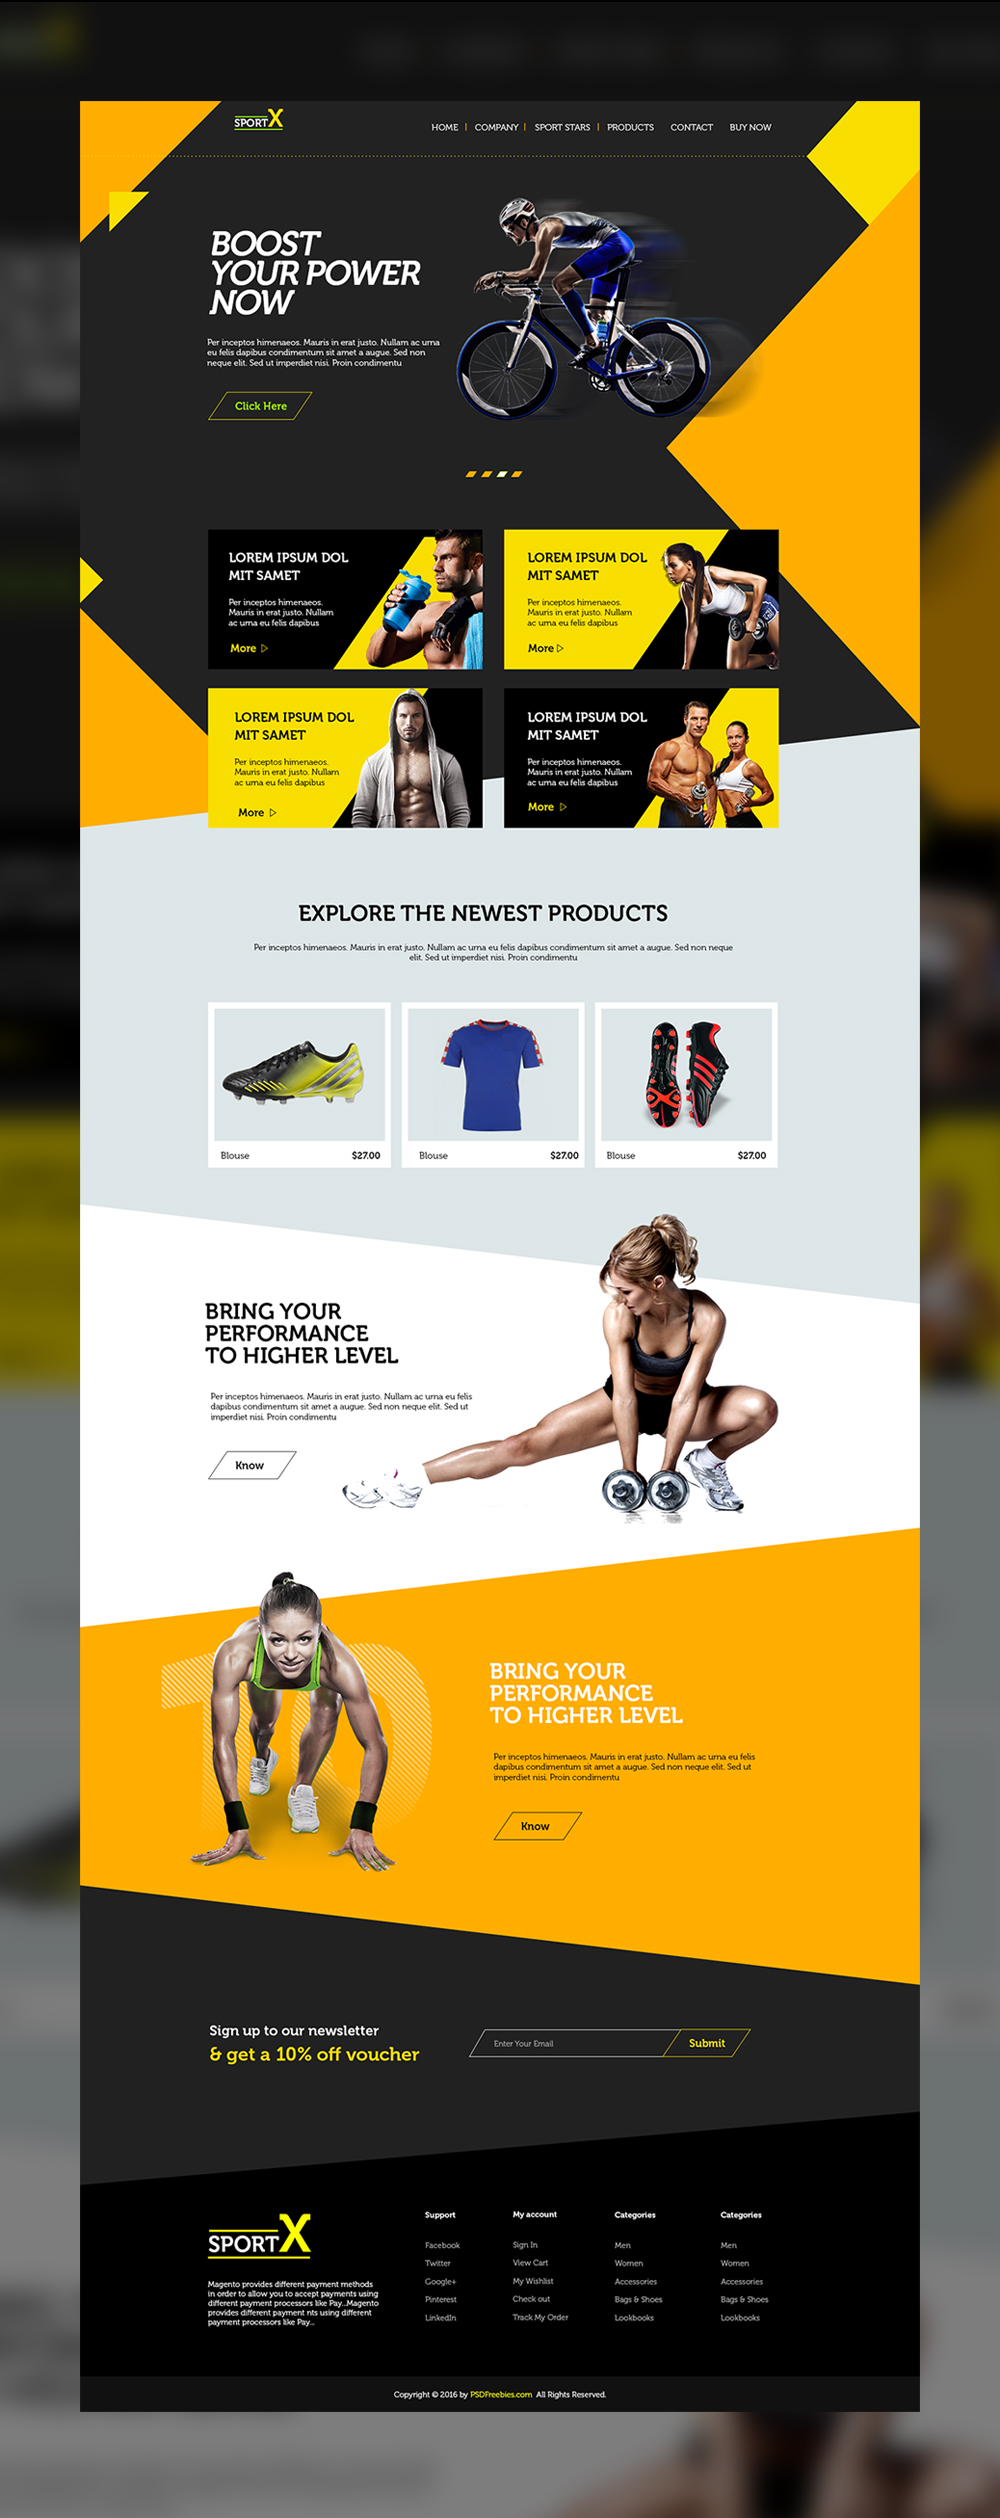 Sports shop website multipurpose free psd template for Website to shop online